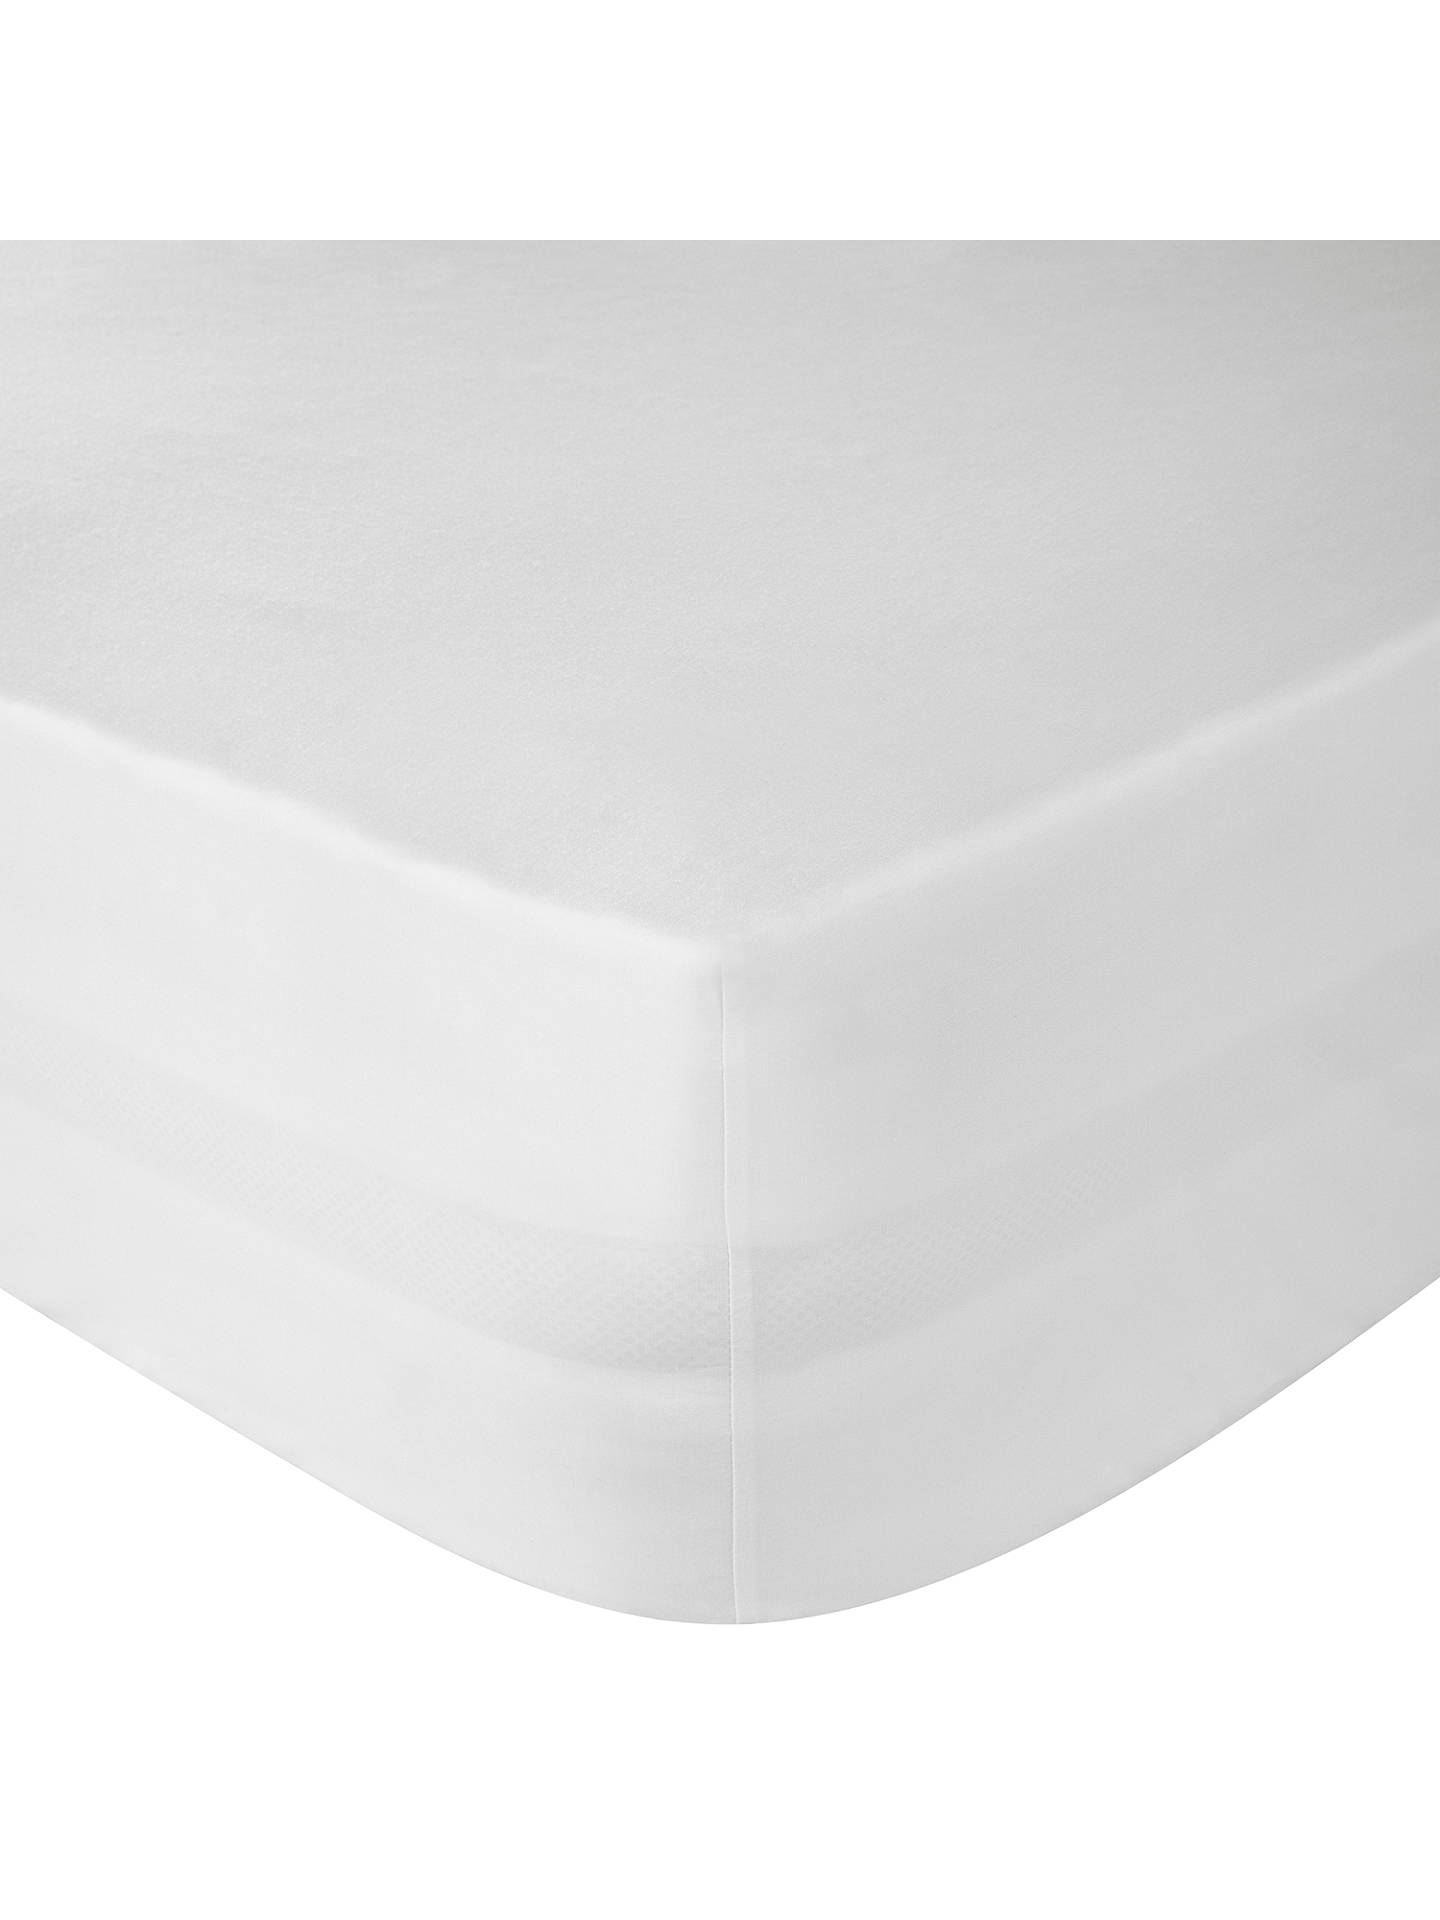 BuyJohn Lewis & Partners The Basics Combed Polycotton Fitted Sheet, White, Single Online at johnlewis.com